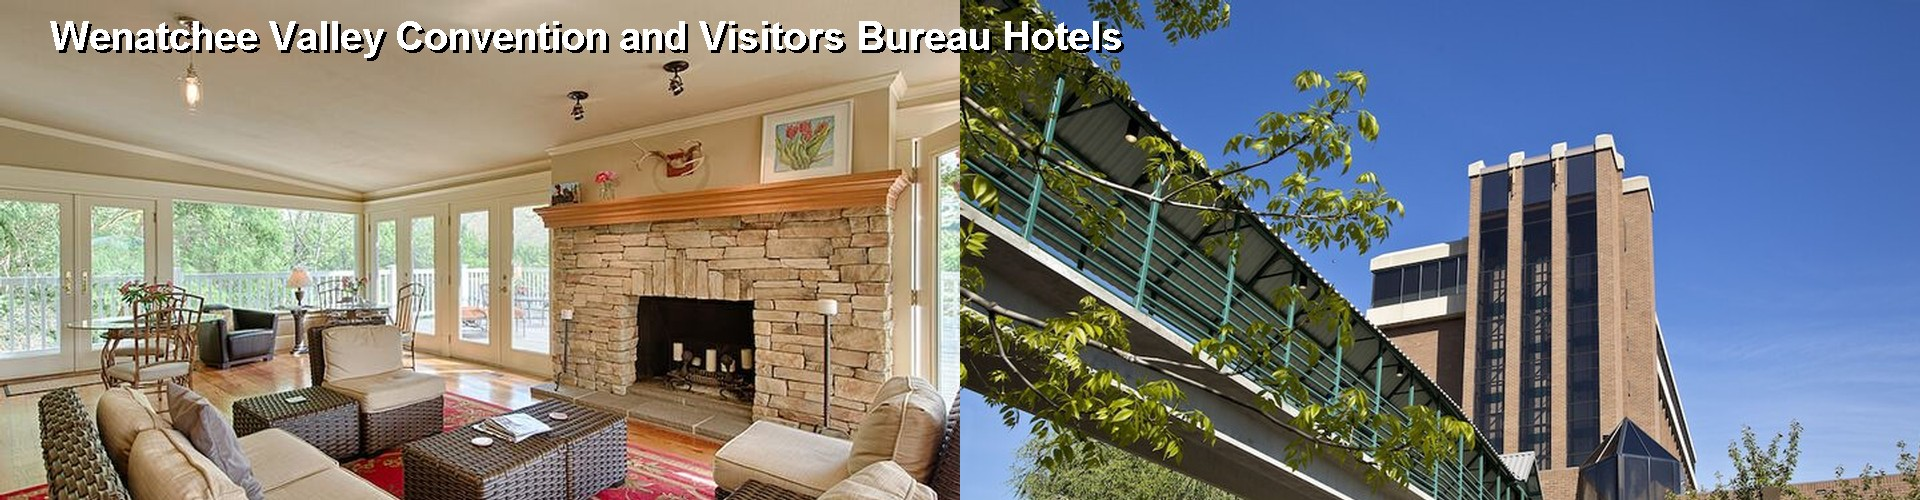 5 Best Hotels near Wenatchee Valley Convention and Visitors Bureau